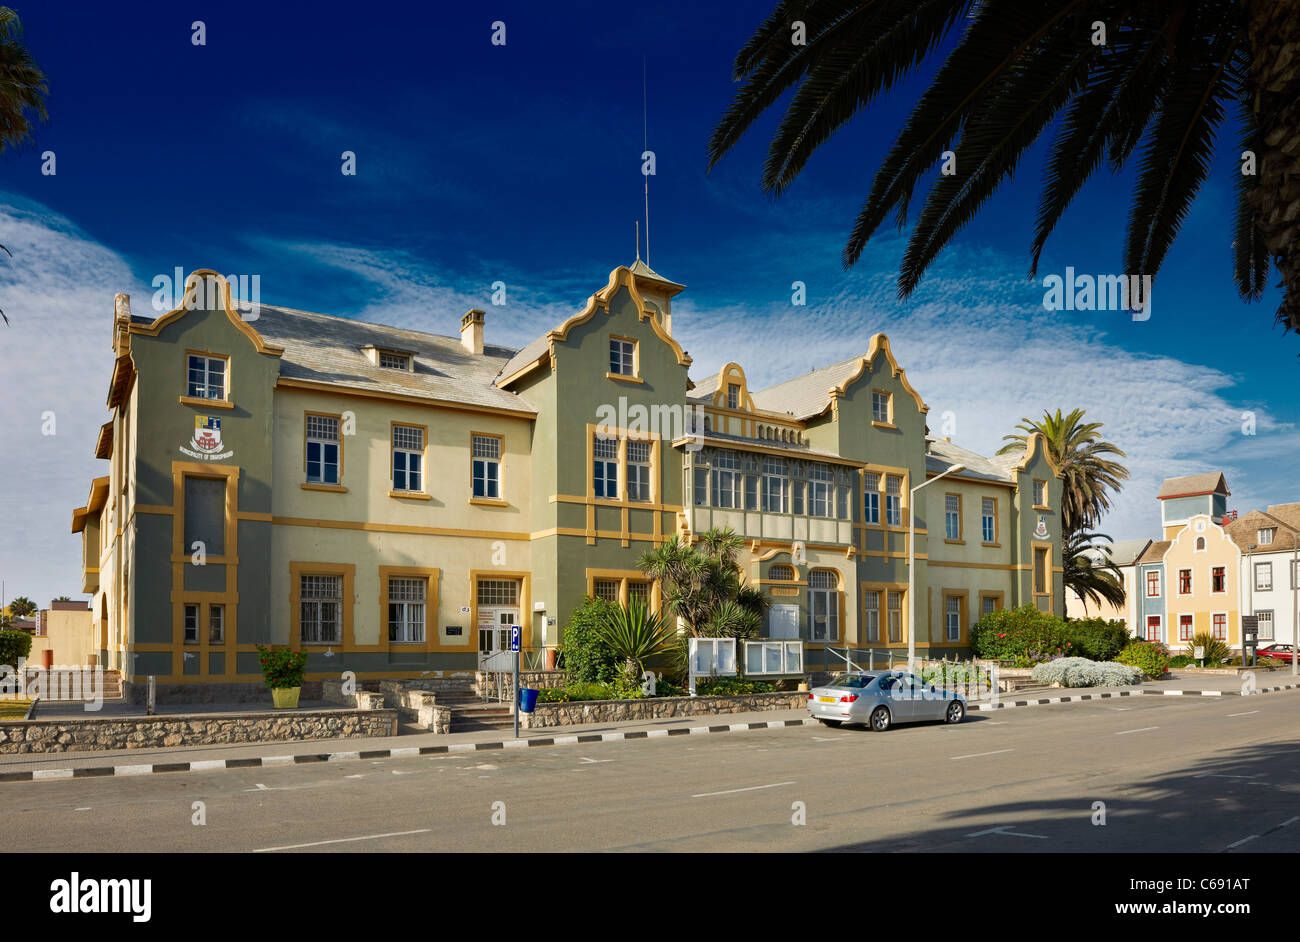 historical German colonial building, old post now municipal office, Swakopmund, Namibia, Africa - Stock Image